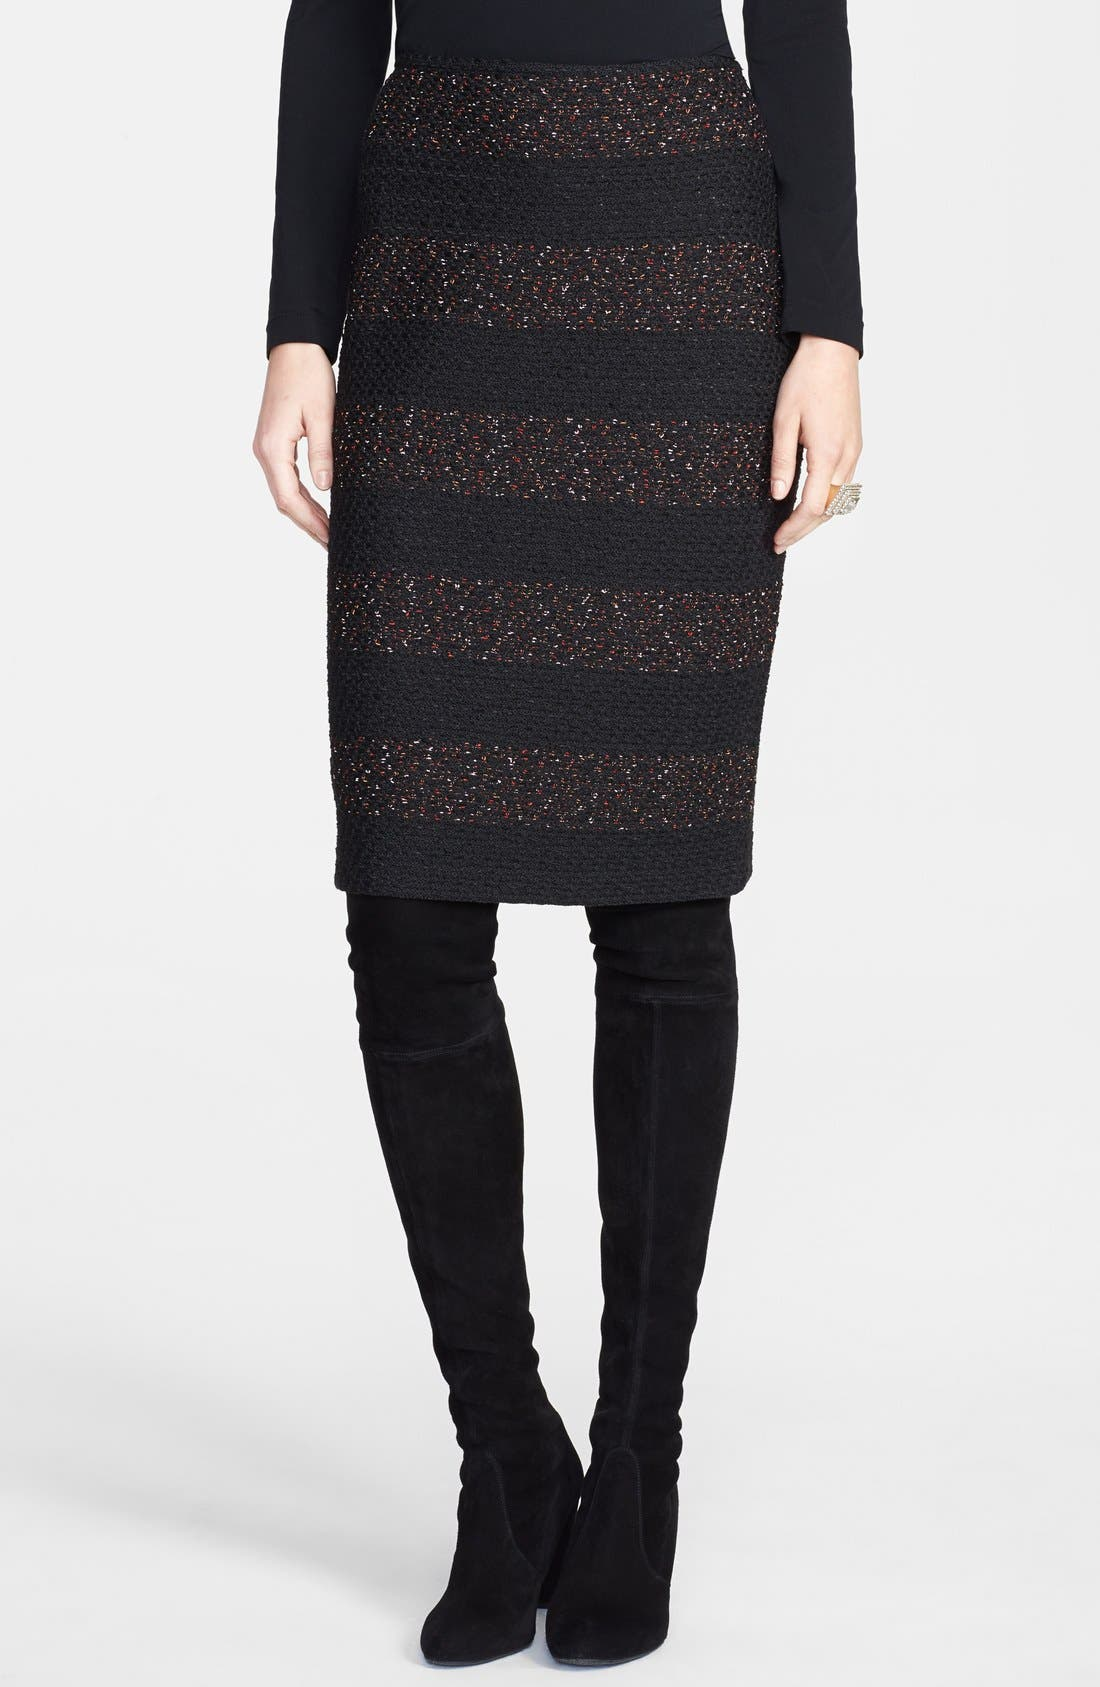 Main Image - St. John Collection Textured Fleck Knit Pencil Skirt